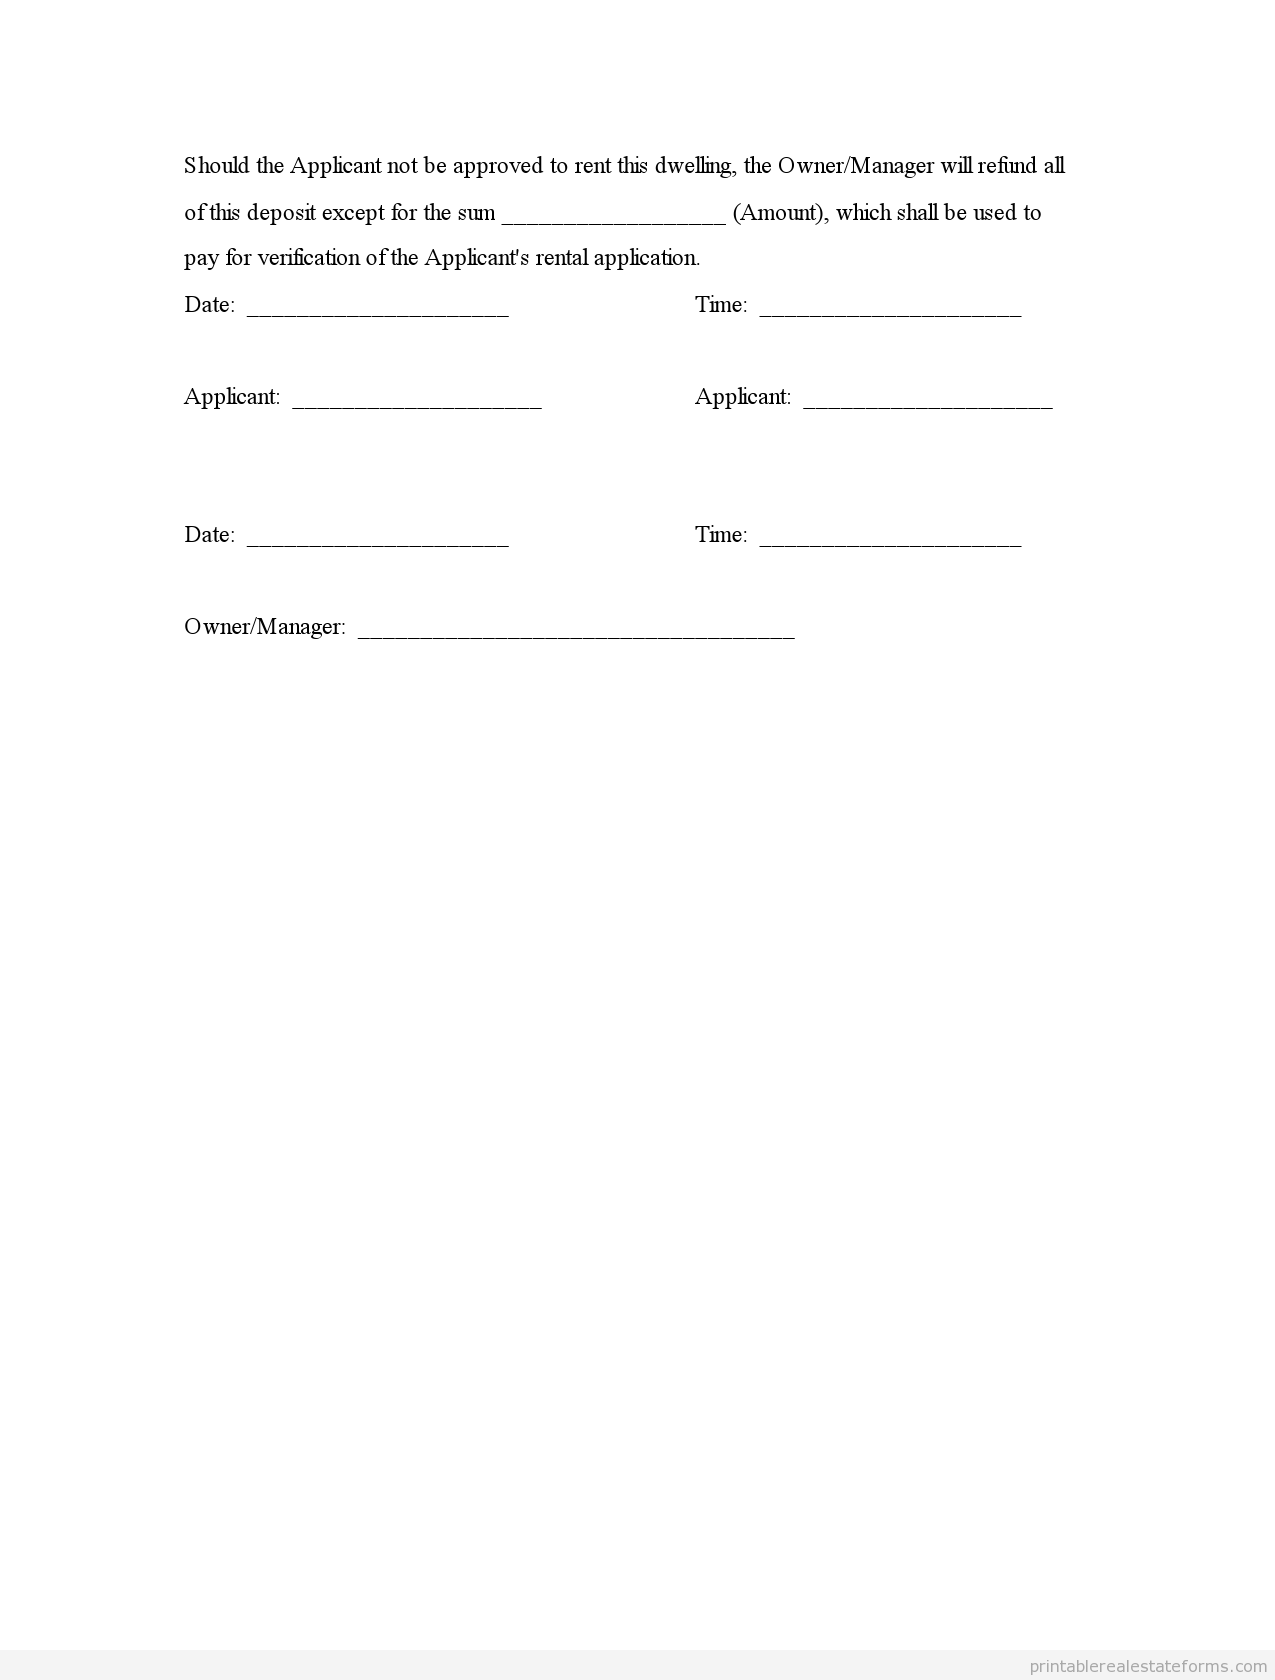 Sample Printable deposit receipt and agreement Form – Sample Deposit Receipt